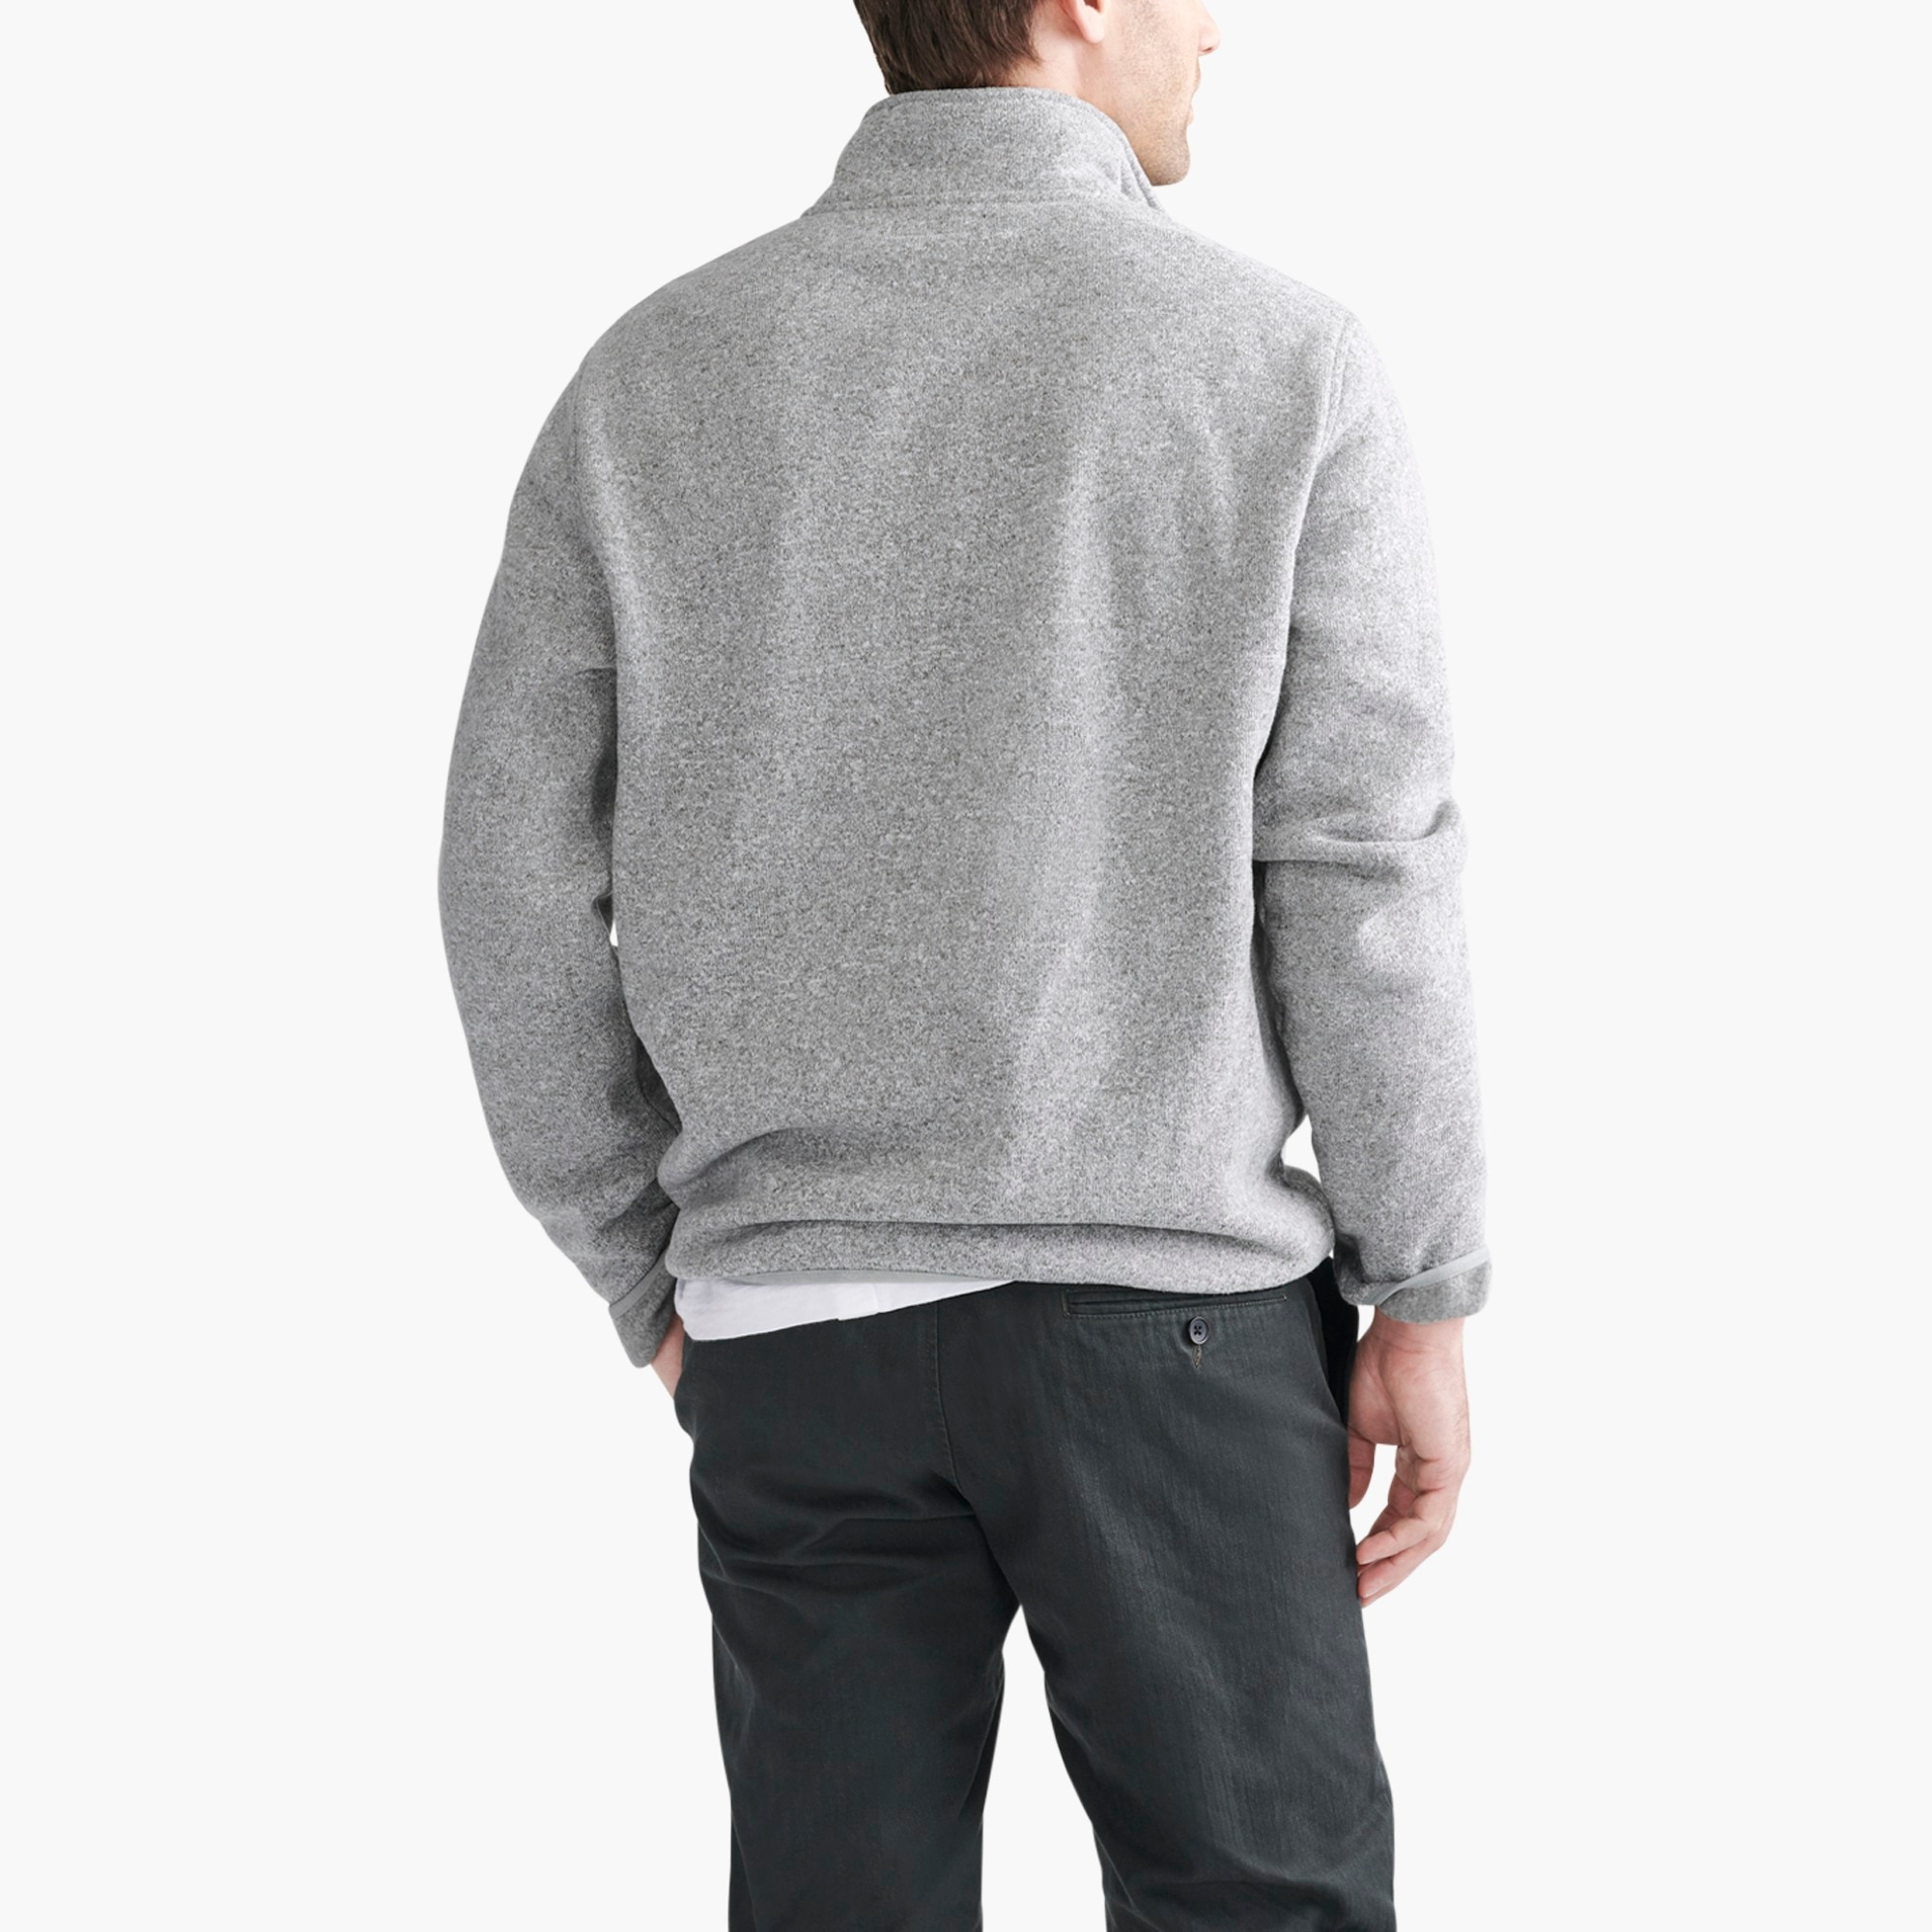 Image 2 for Sweater fleece half-zip